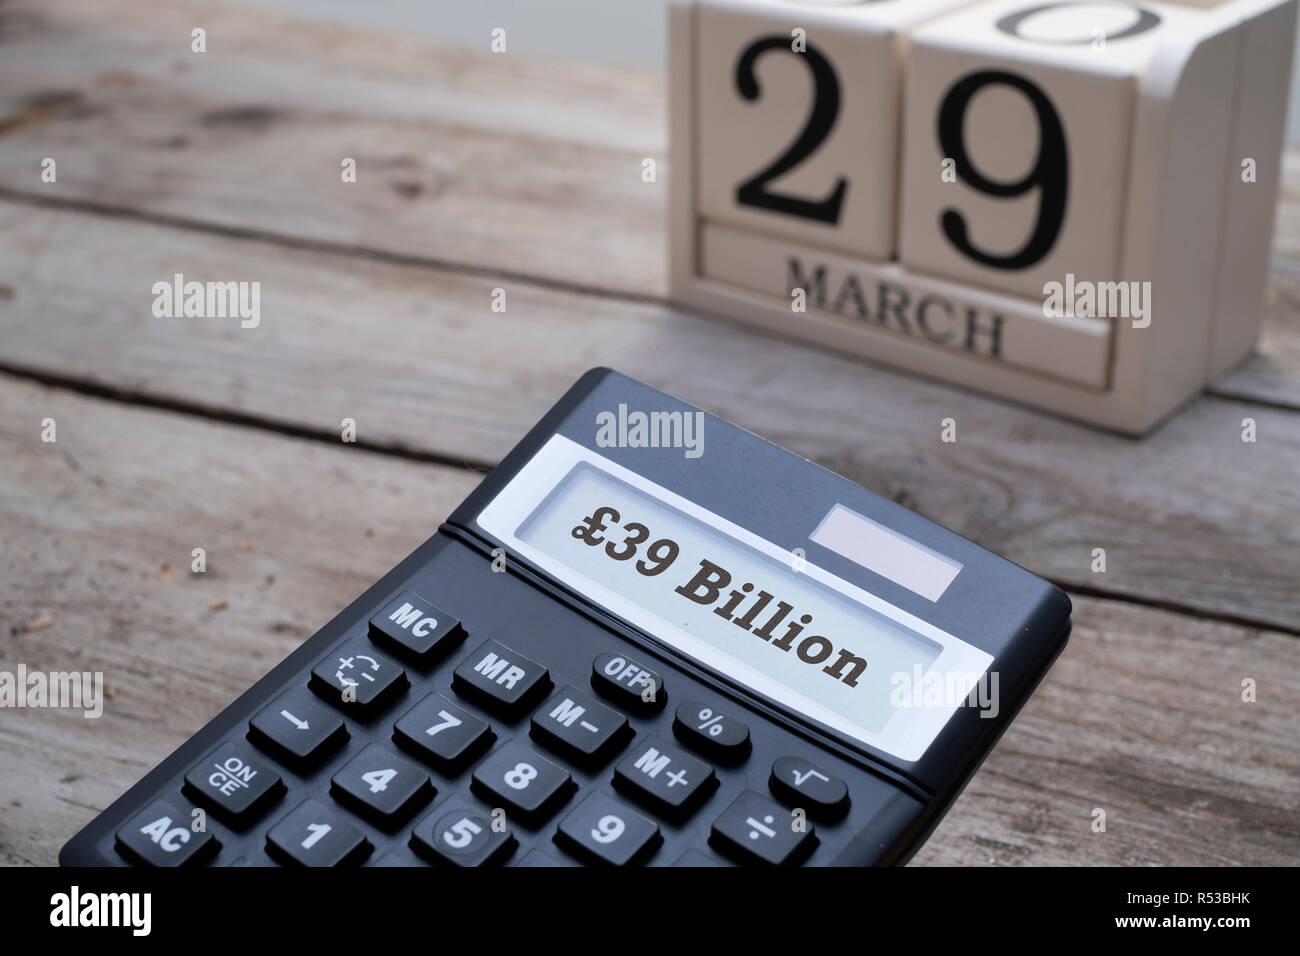 Brexit concept, calculator with date of 29th March - Stock Image